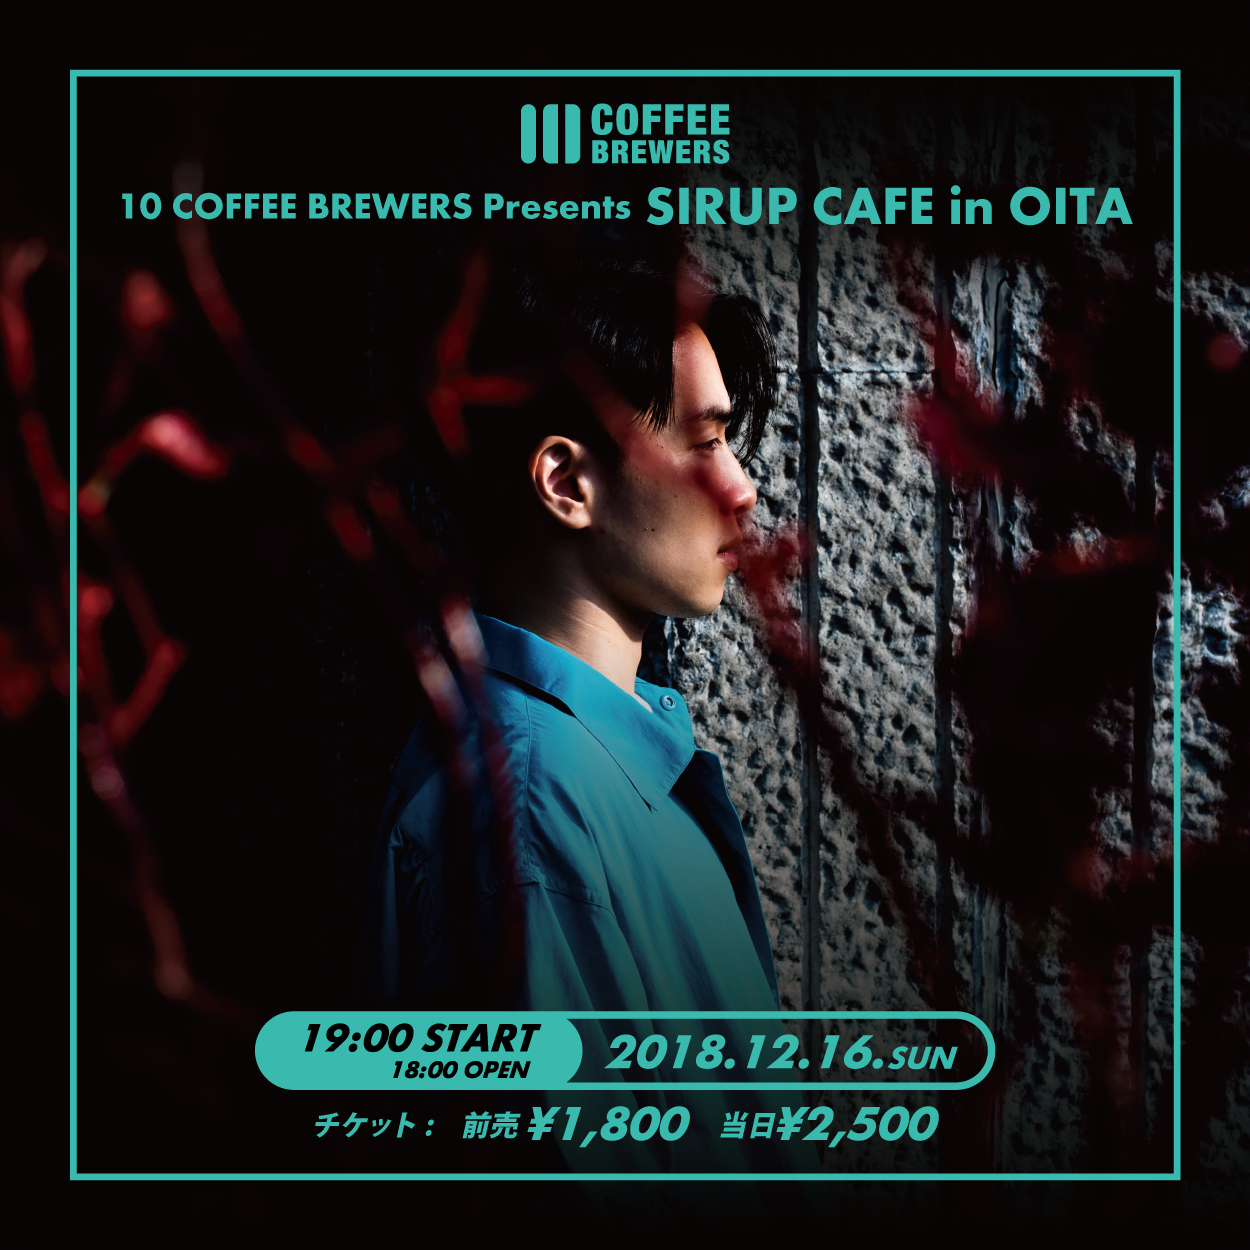 10 COFFEE BREWERS Presents SIRUP CAFE in OITA